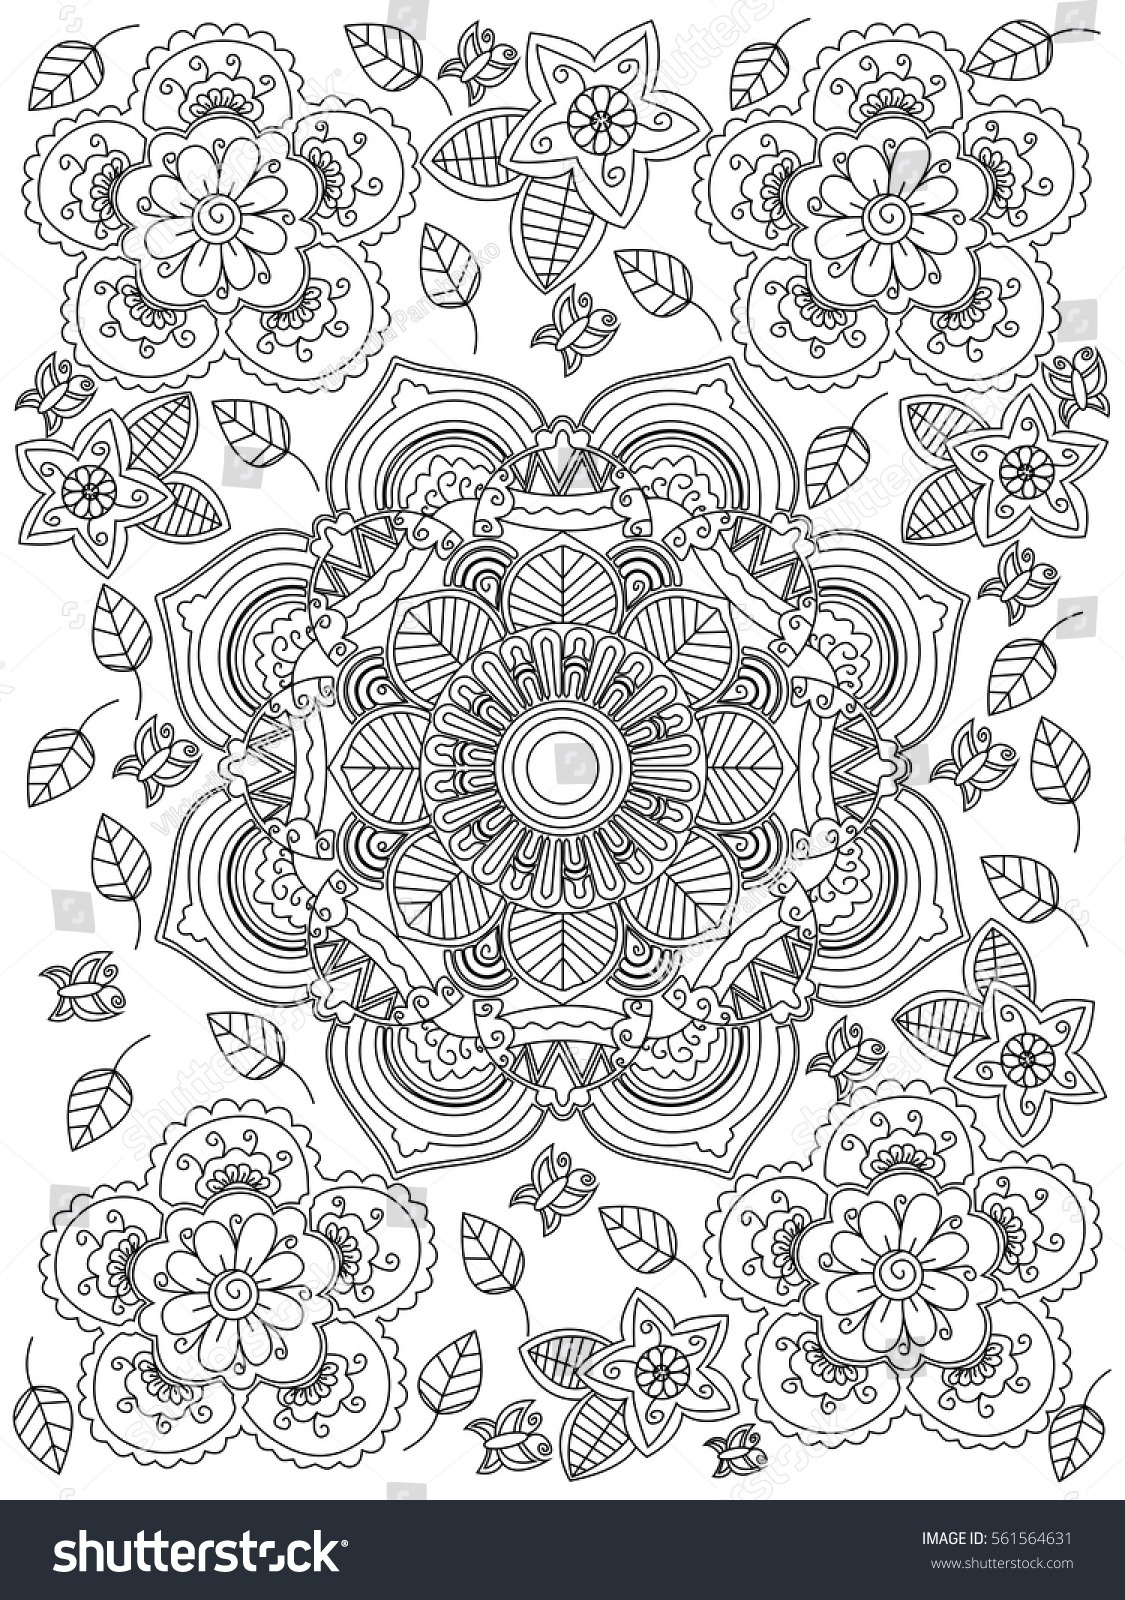 Coloring Page  52 Mandala Coloring Book For Adults